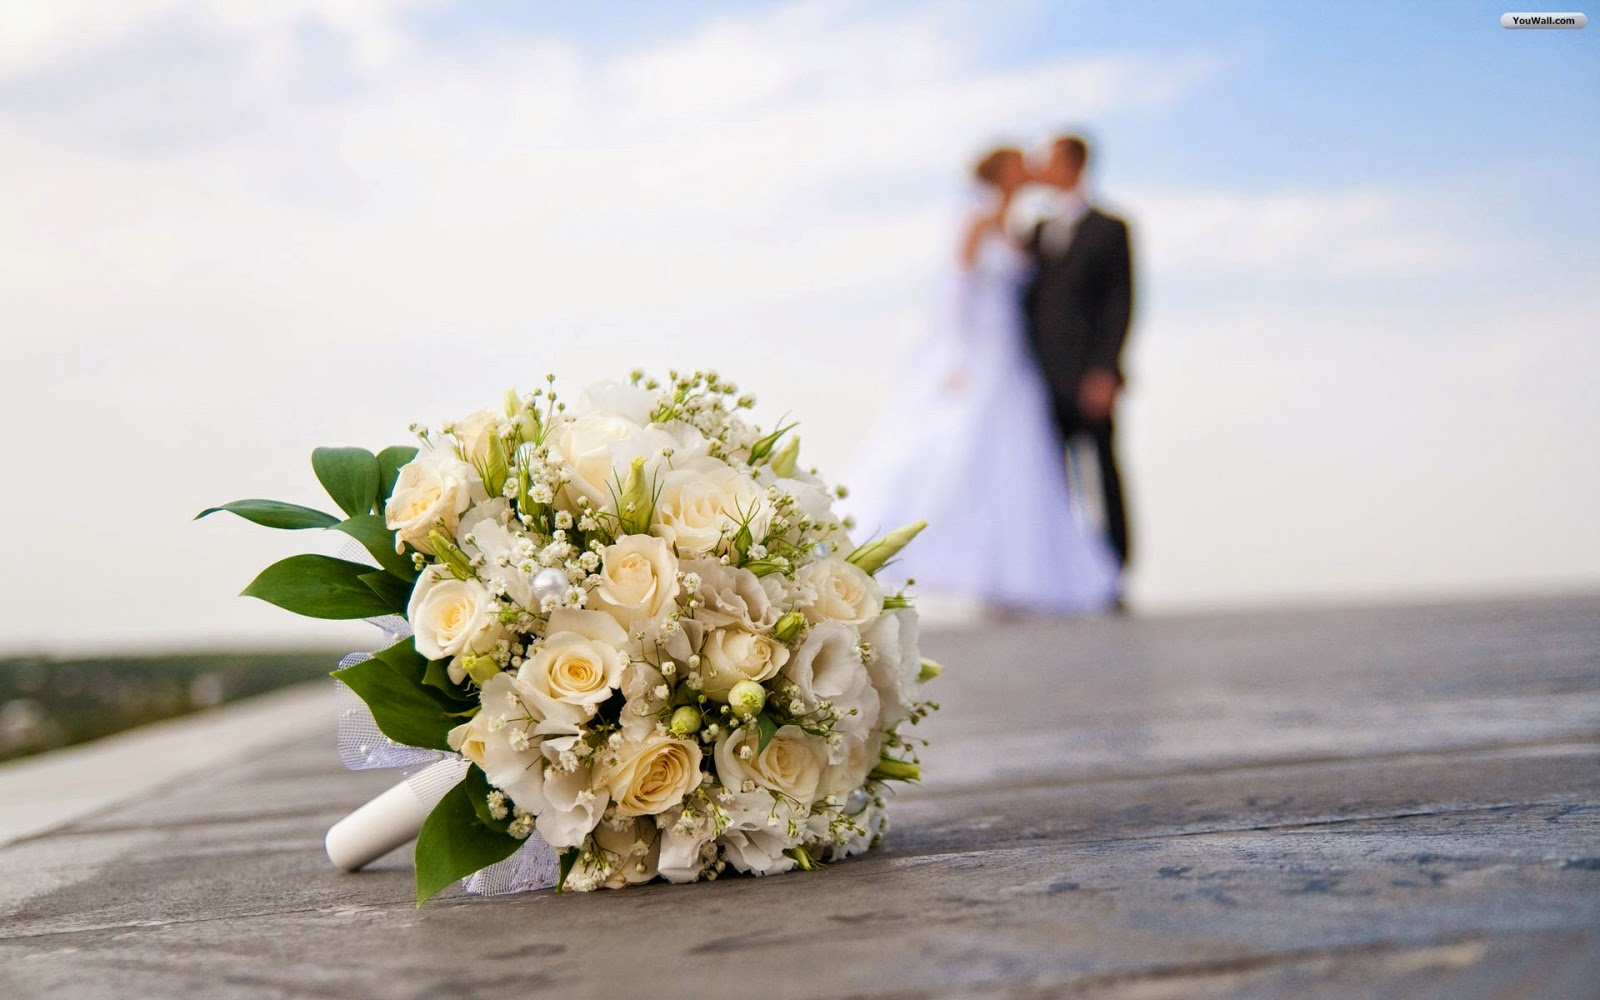 Romantic wedding wallpaper - Flower bouquets for wedding